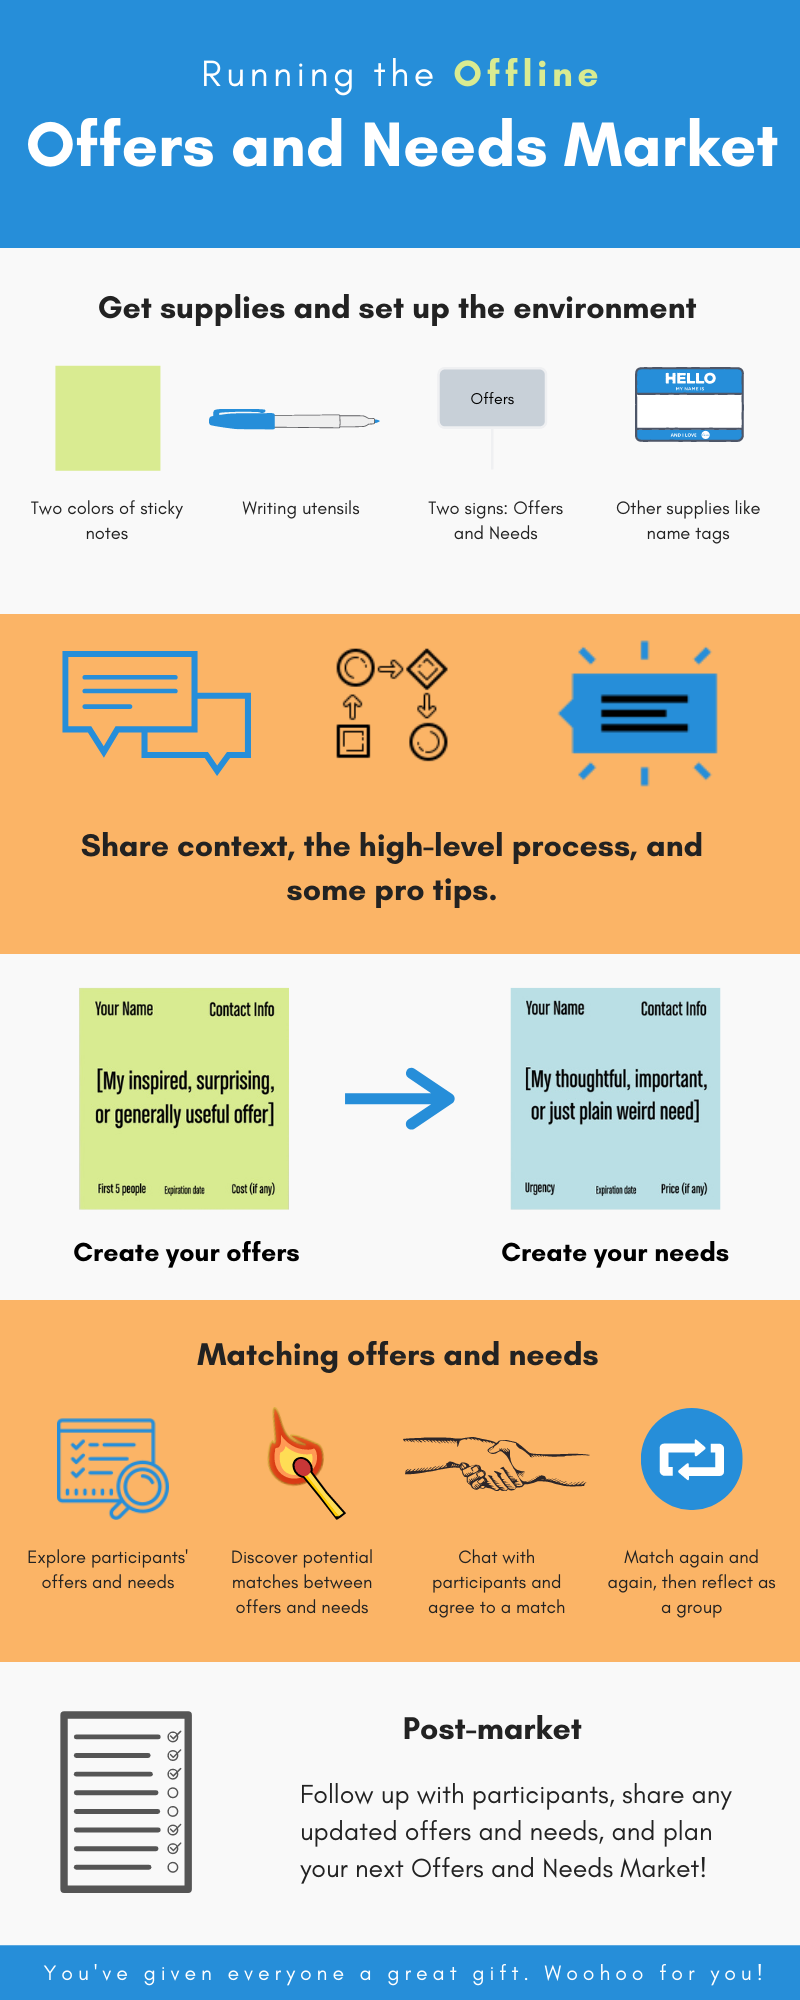 Offers and Needs Market Process Infographic (Offline)